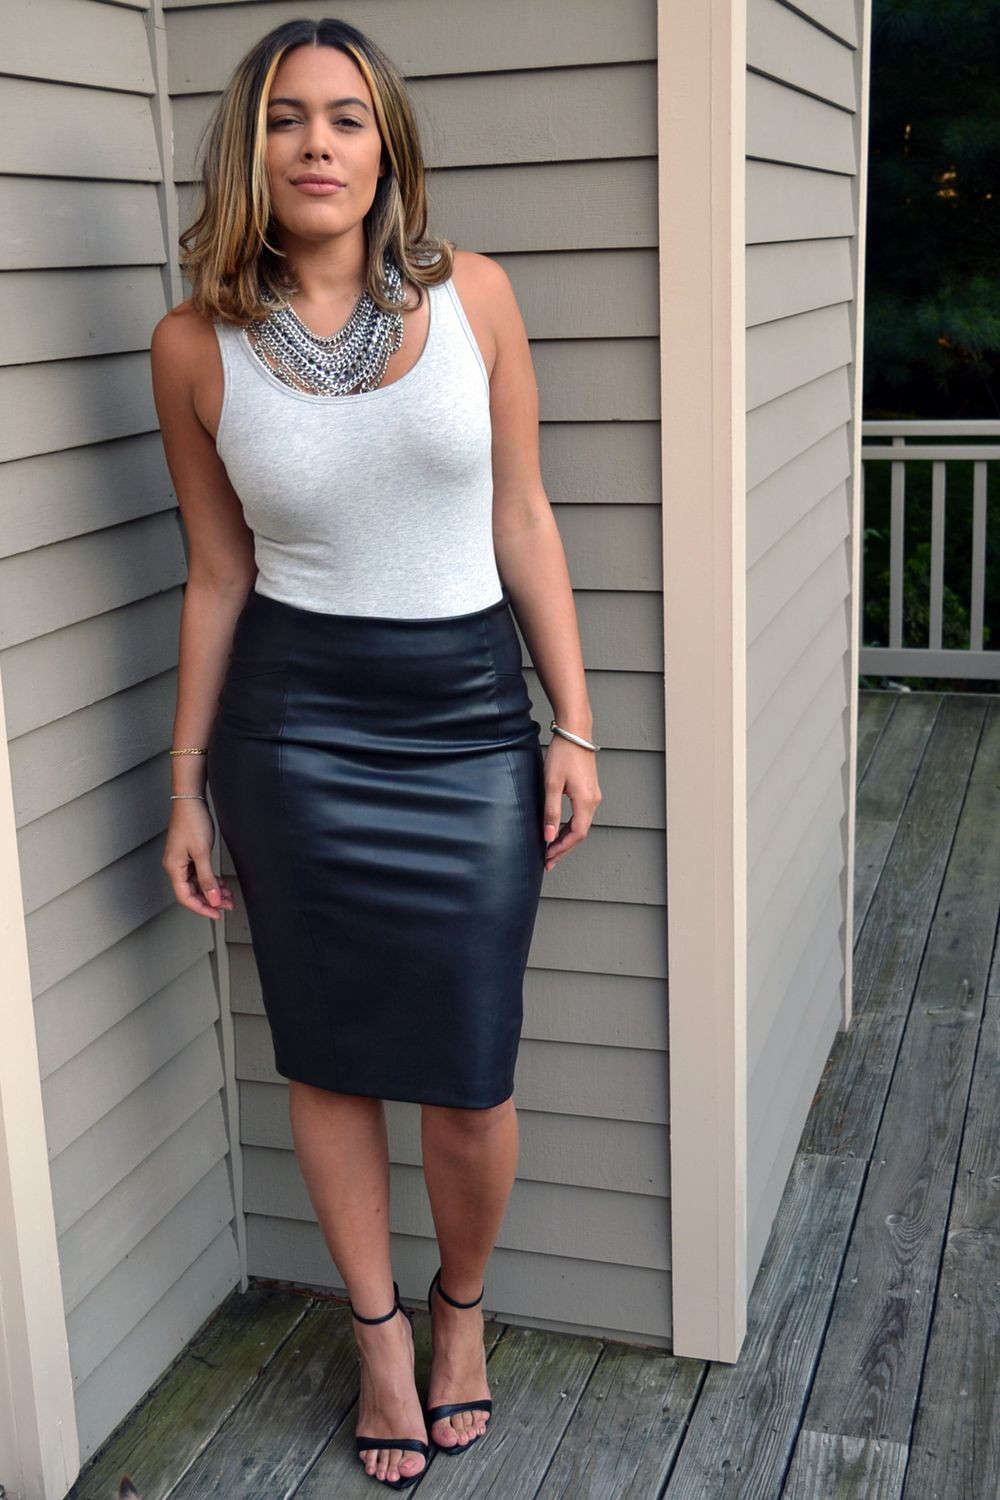 Summer Leather | Pencil skirts, Latex and Nice